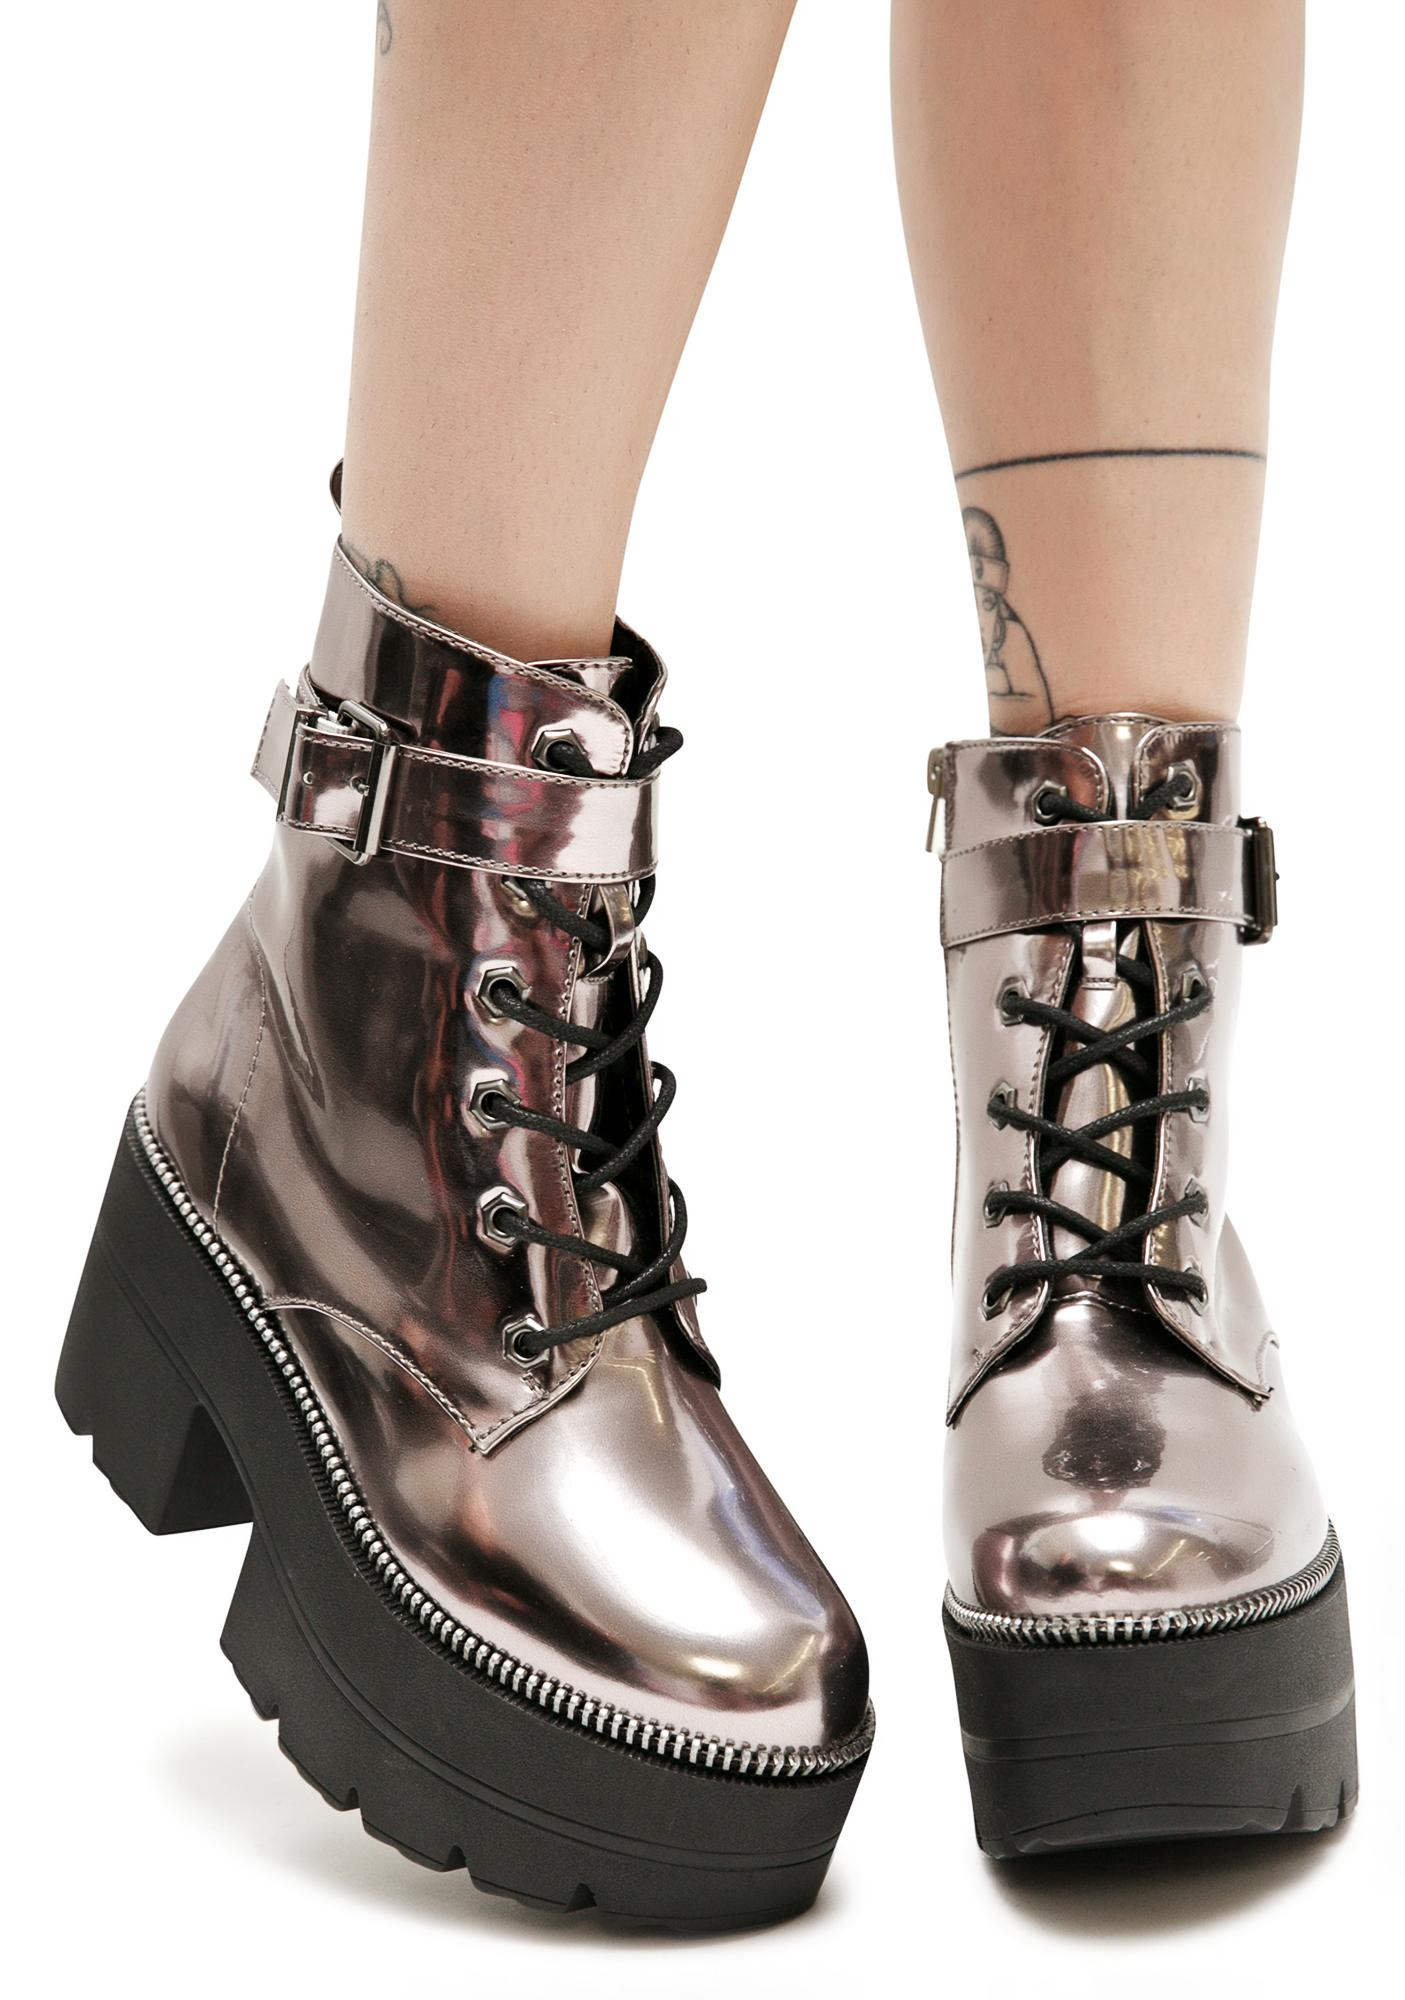 Metallic Boots Sale: Save Up to 50% Off! Shop roeprocjfc.ga's huge selection of Metallic Boots - Over styles available. FREE Shipping & Exchanges, and a % price guarantee!